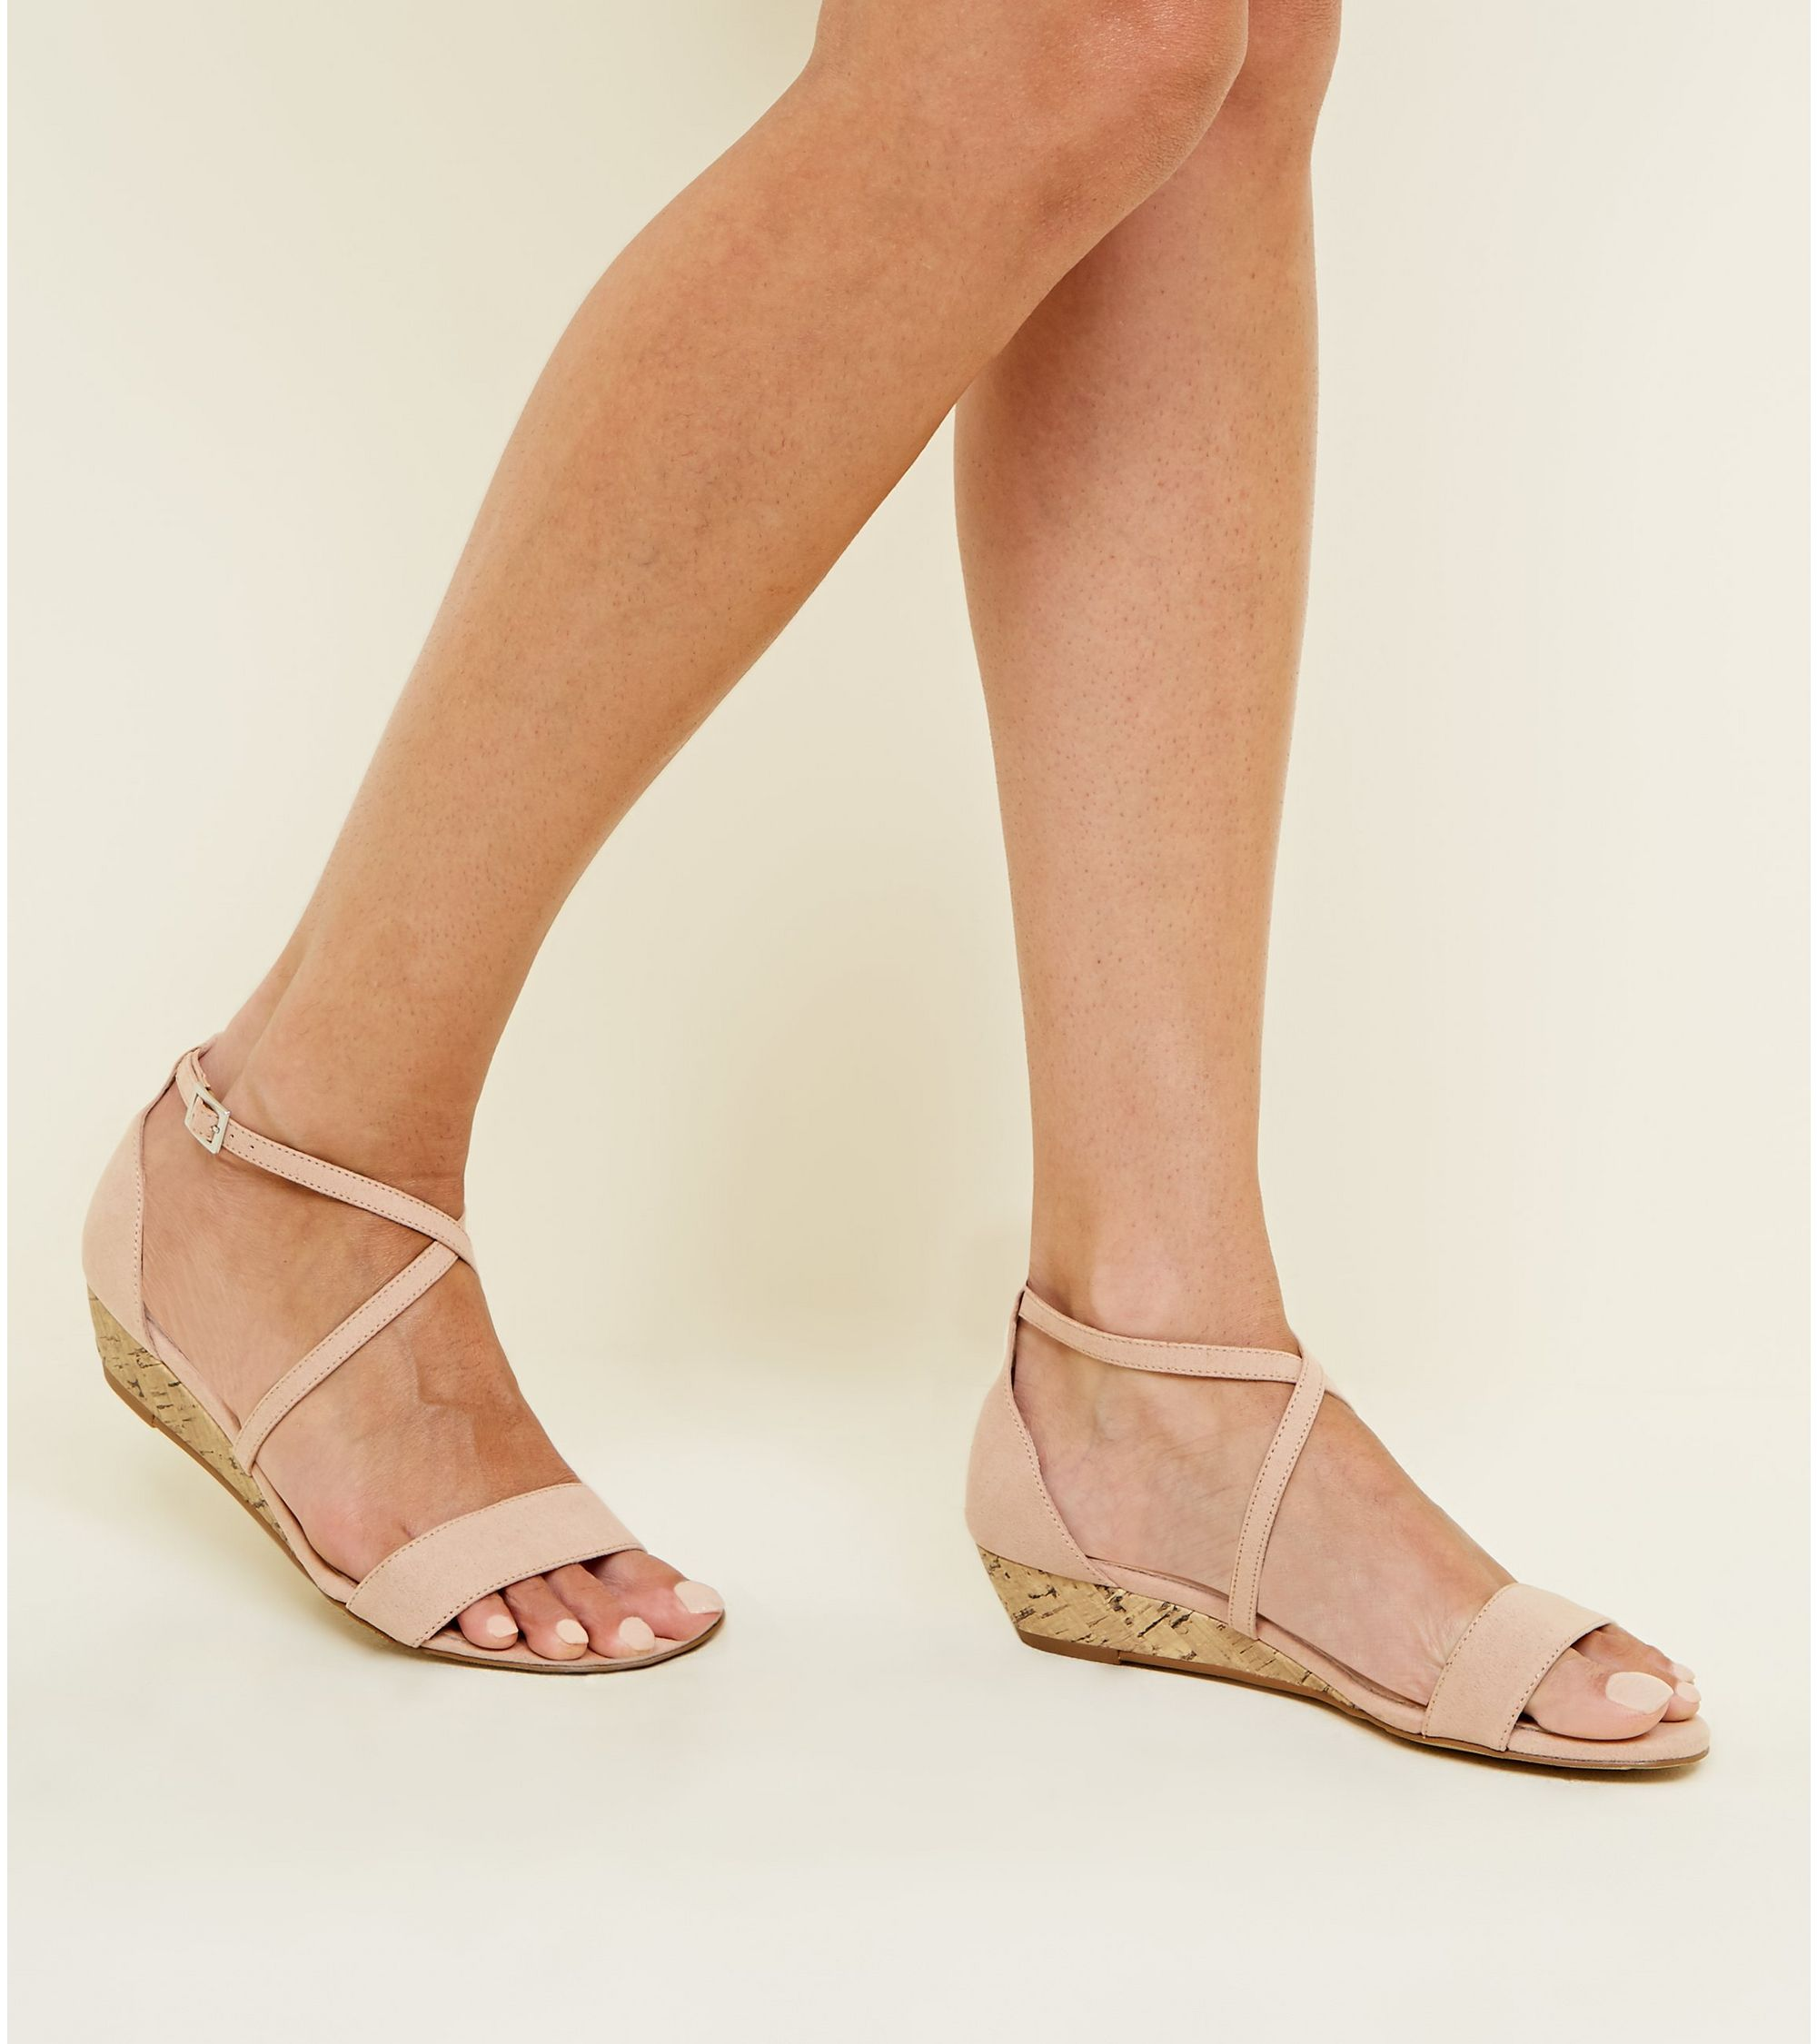 3f9e4294a6a Nude Comfort Suedette Low Wedge Heel Sandals